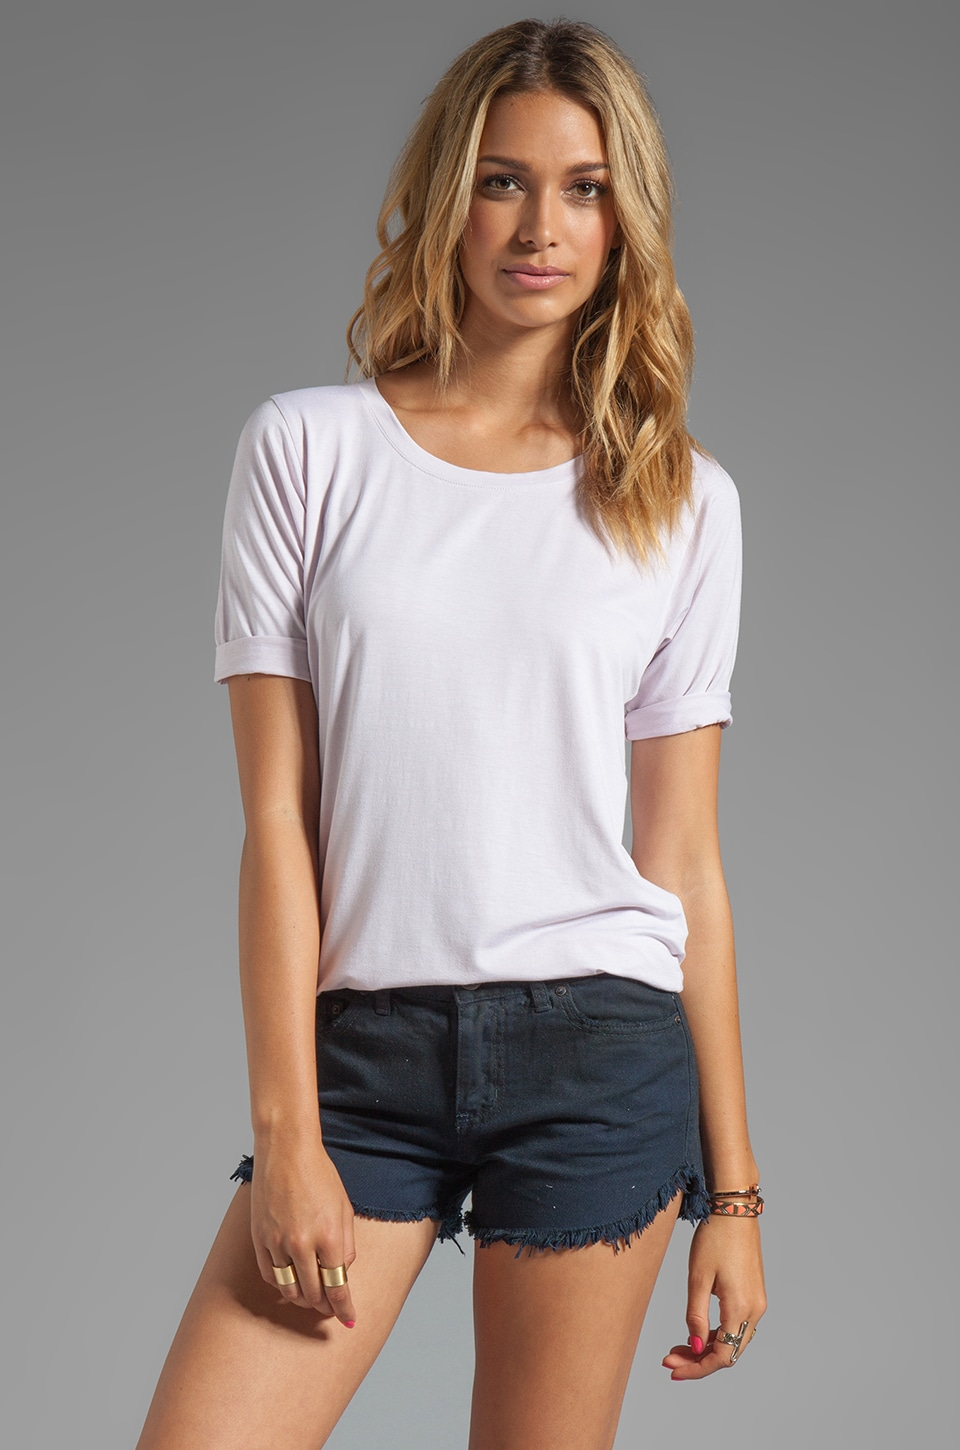 Feel the Piece Boyfriend Tee in Prim